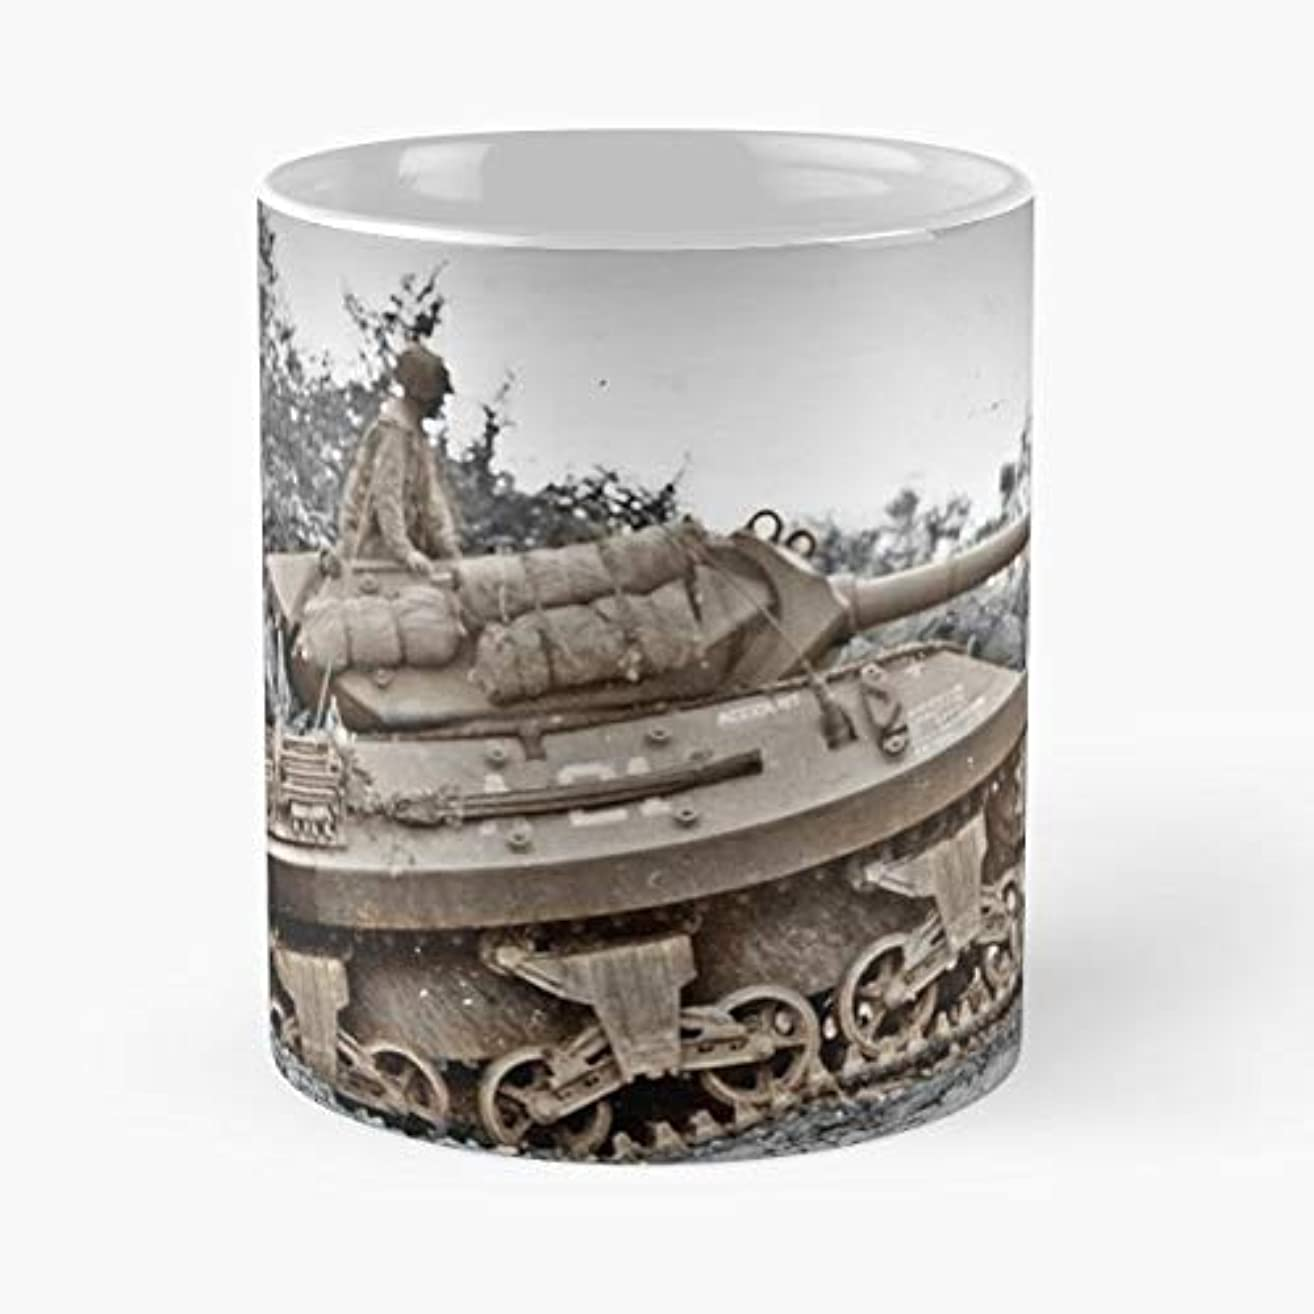 Sherman Tanks Soldiers Equipment D Day Destroyers Funny Floral Coffee Mugs Gifts